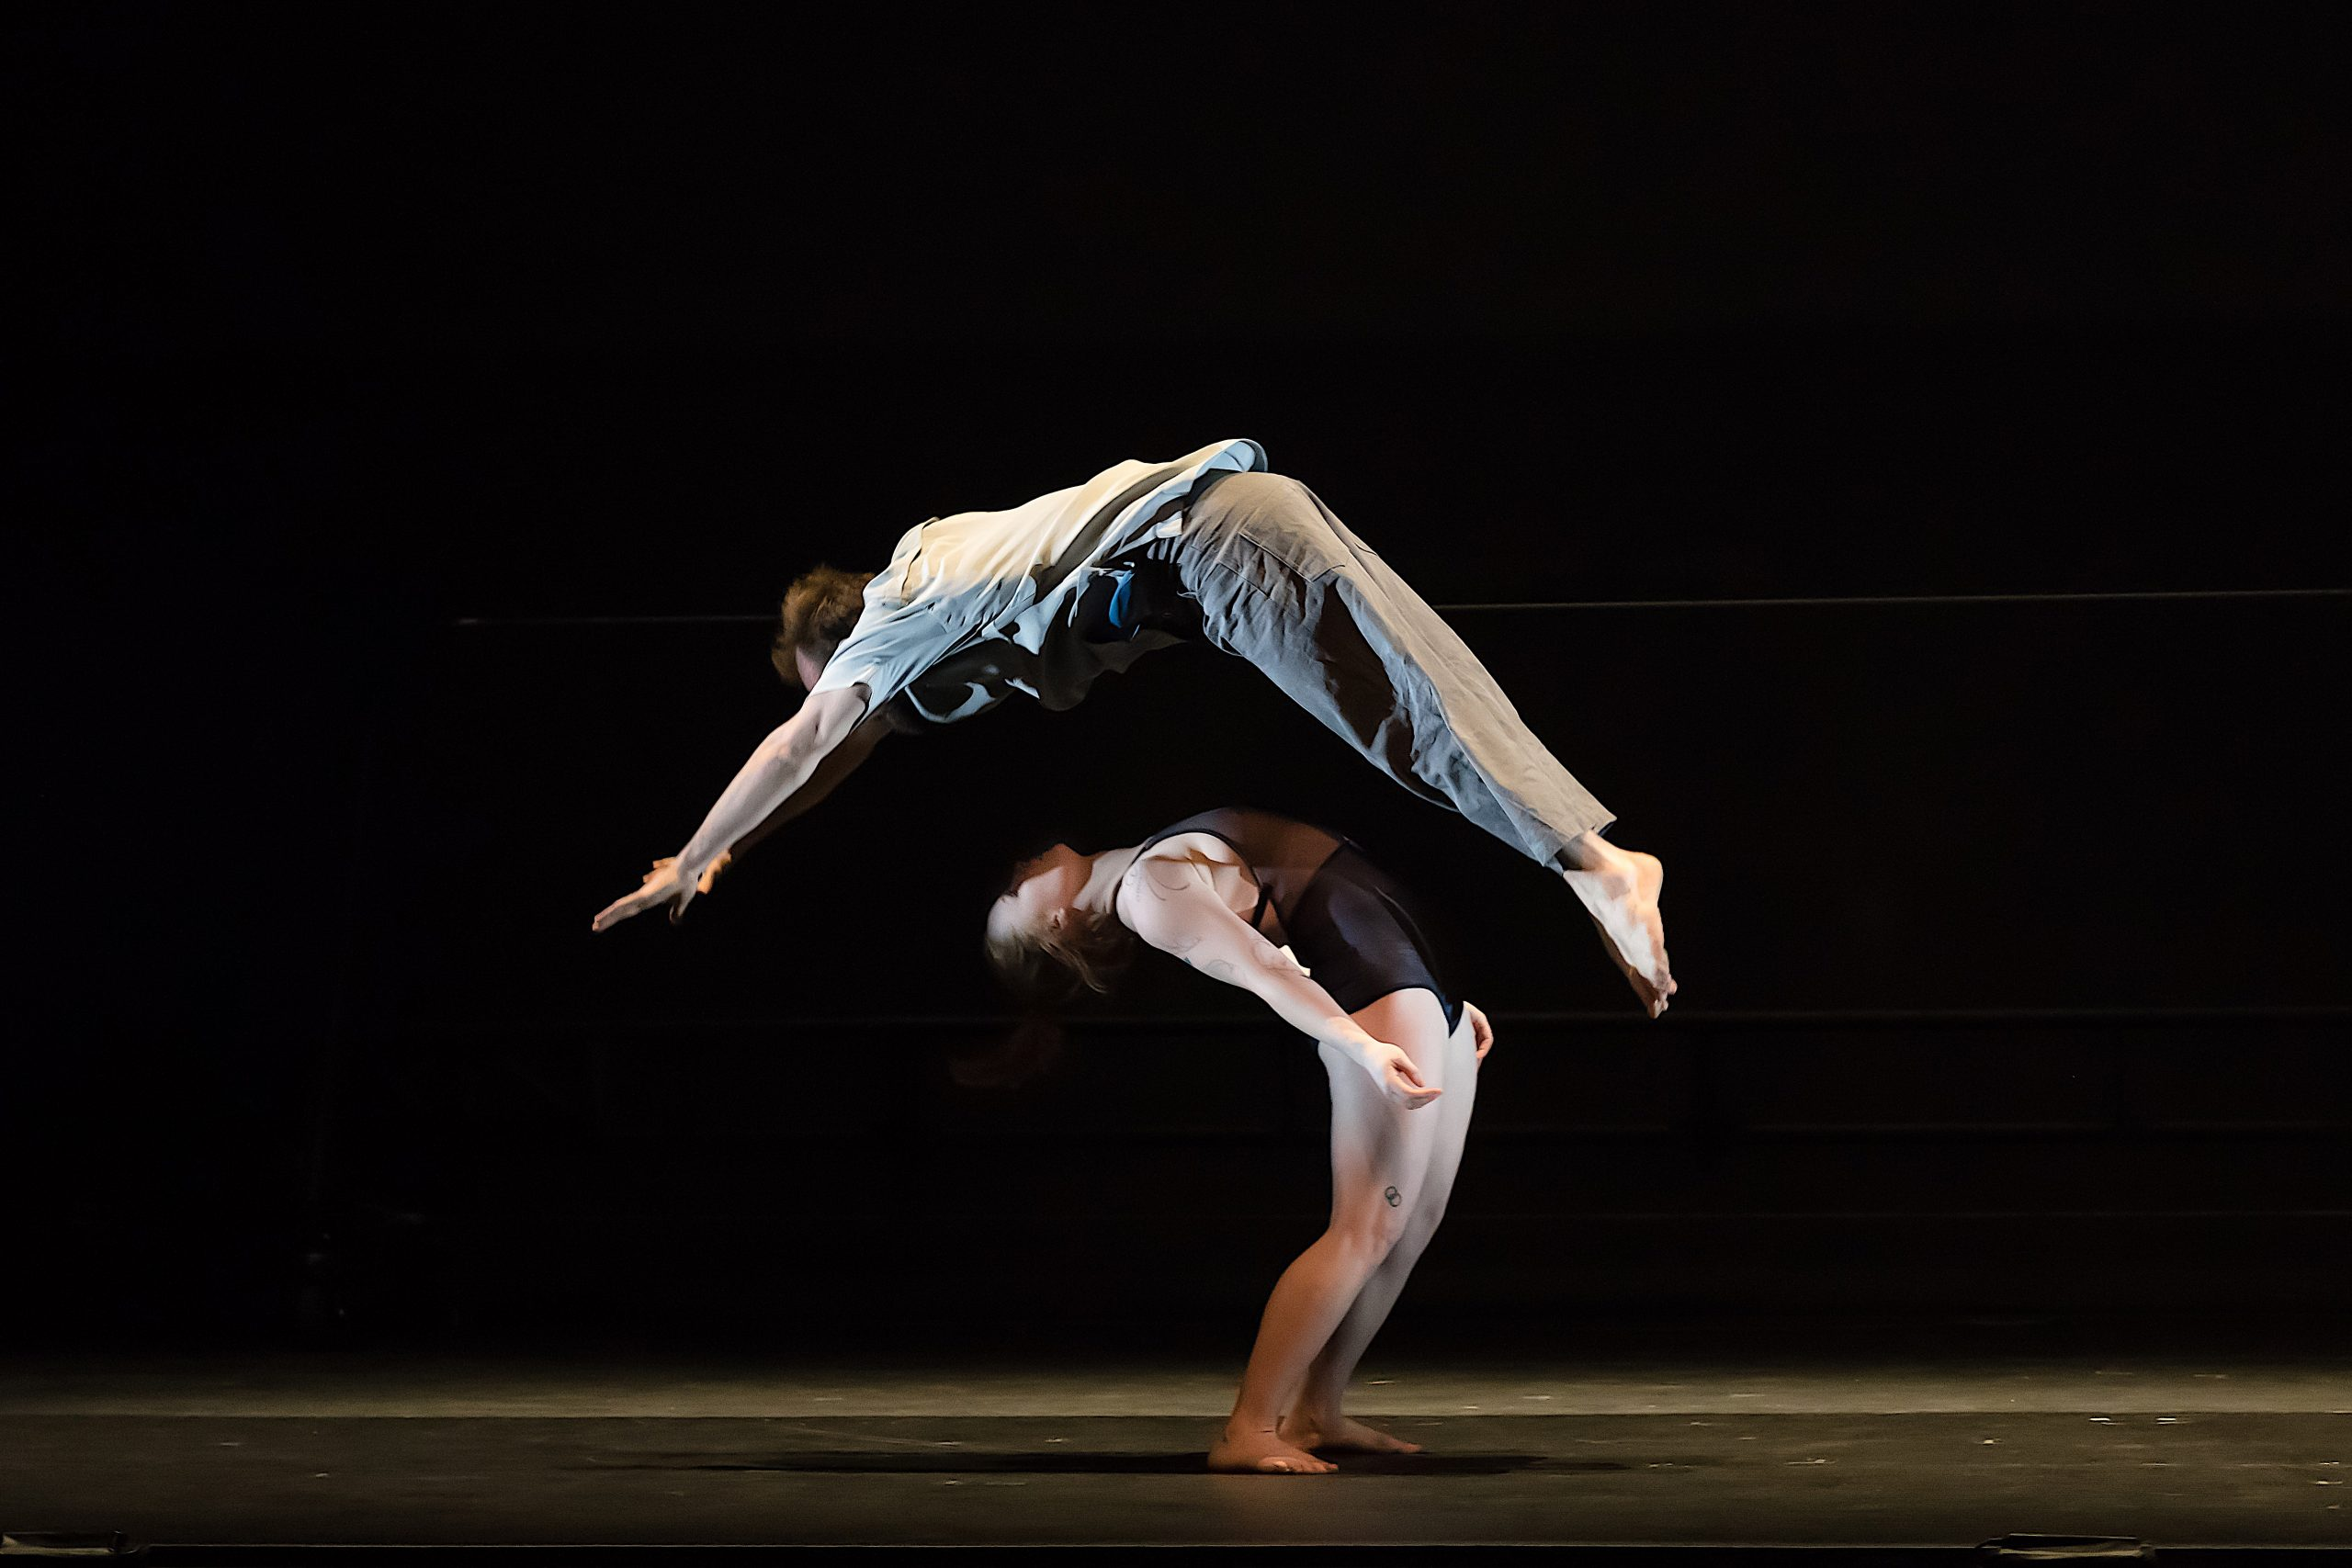 The 7 Fingers performs Passagers. A standing circus artist leans into a deep backbend as a second circus artist soars above to tumble over her.